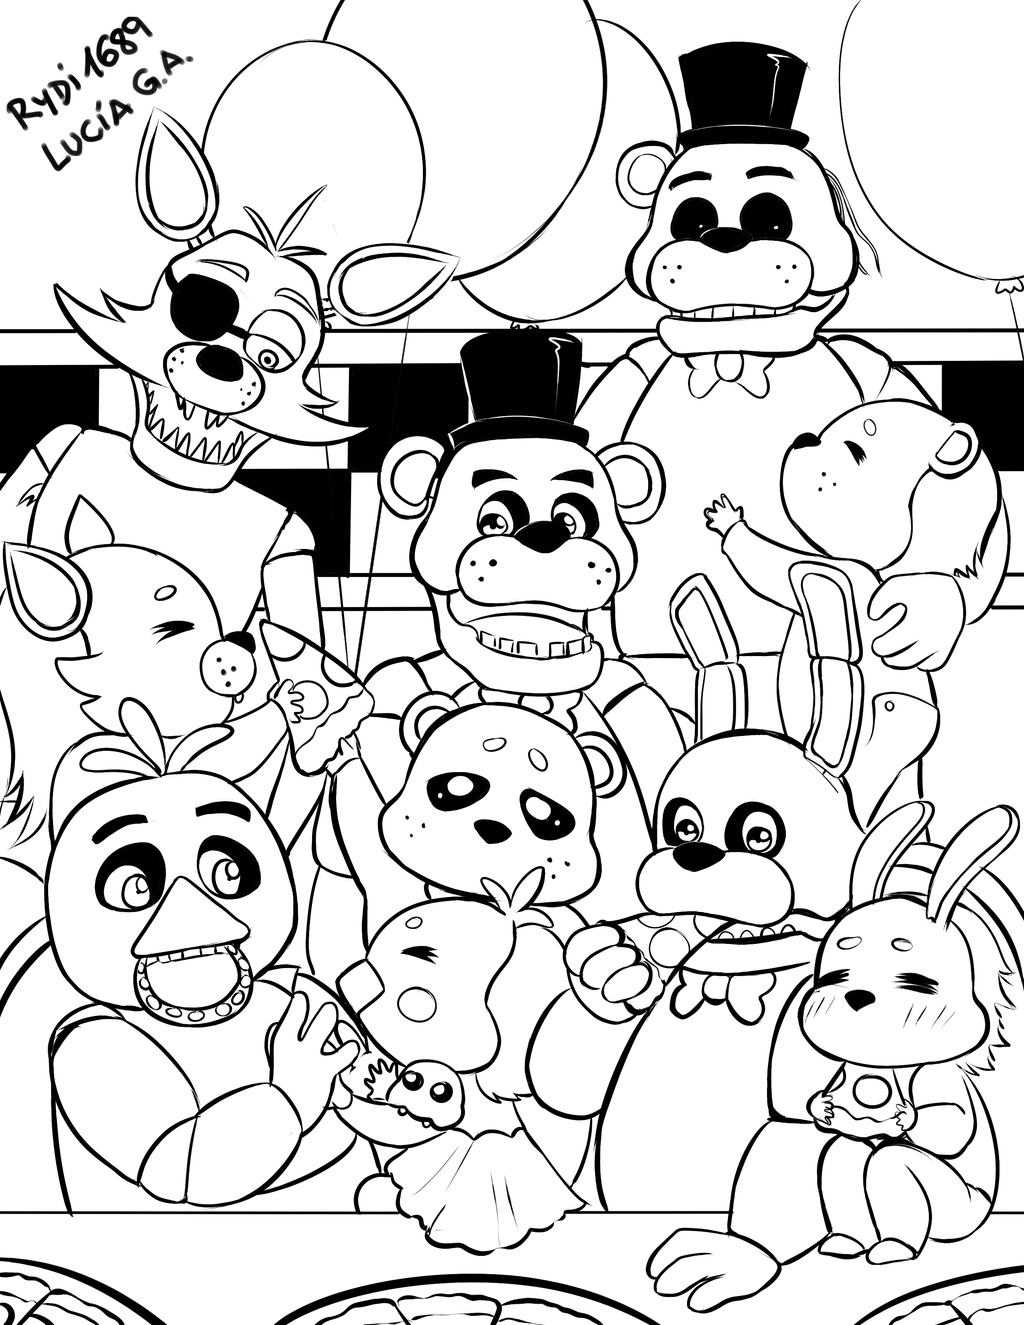 Fnaf Sister Location Coloring Pages - Five Nights At Freddy's ... | 1325x1024